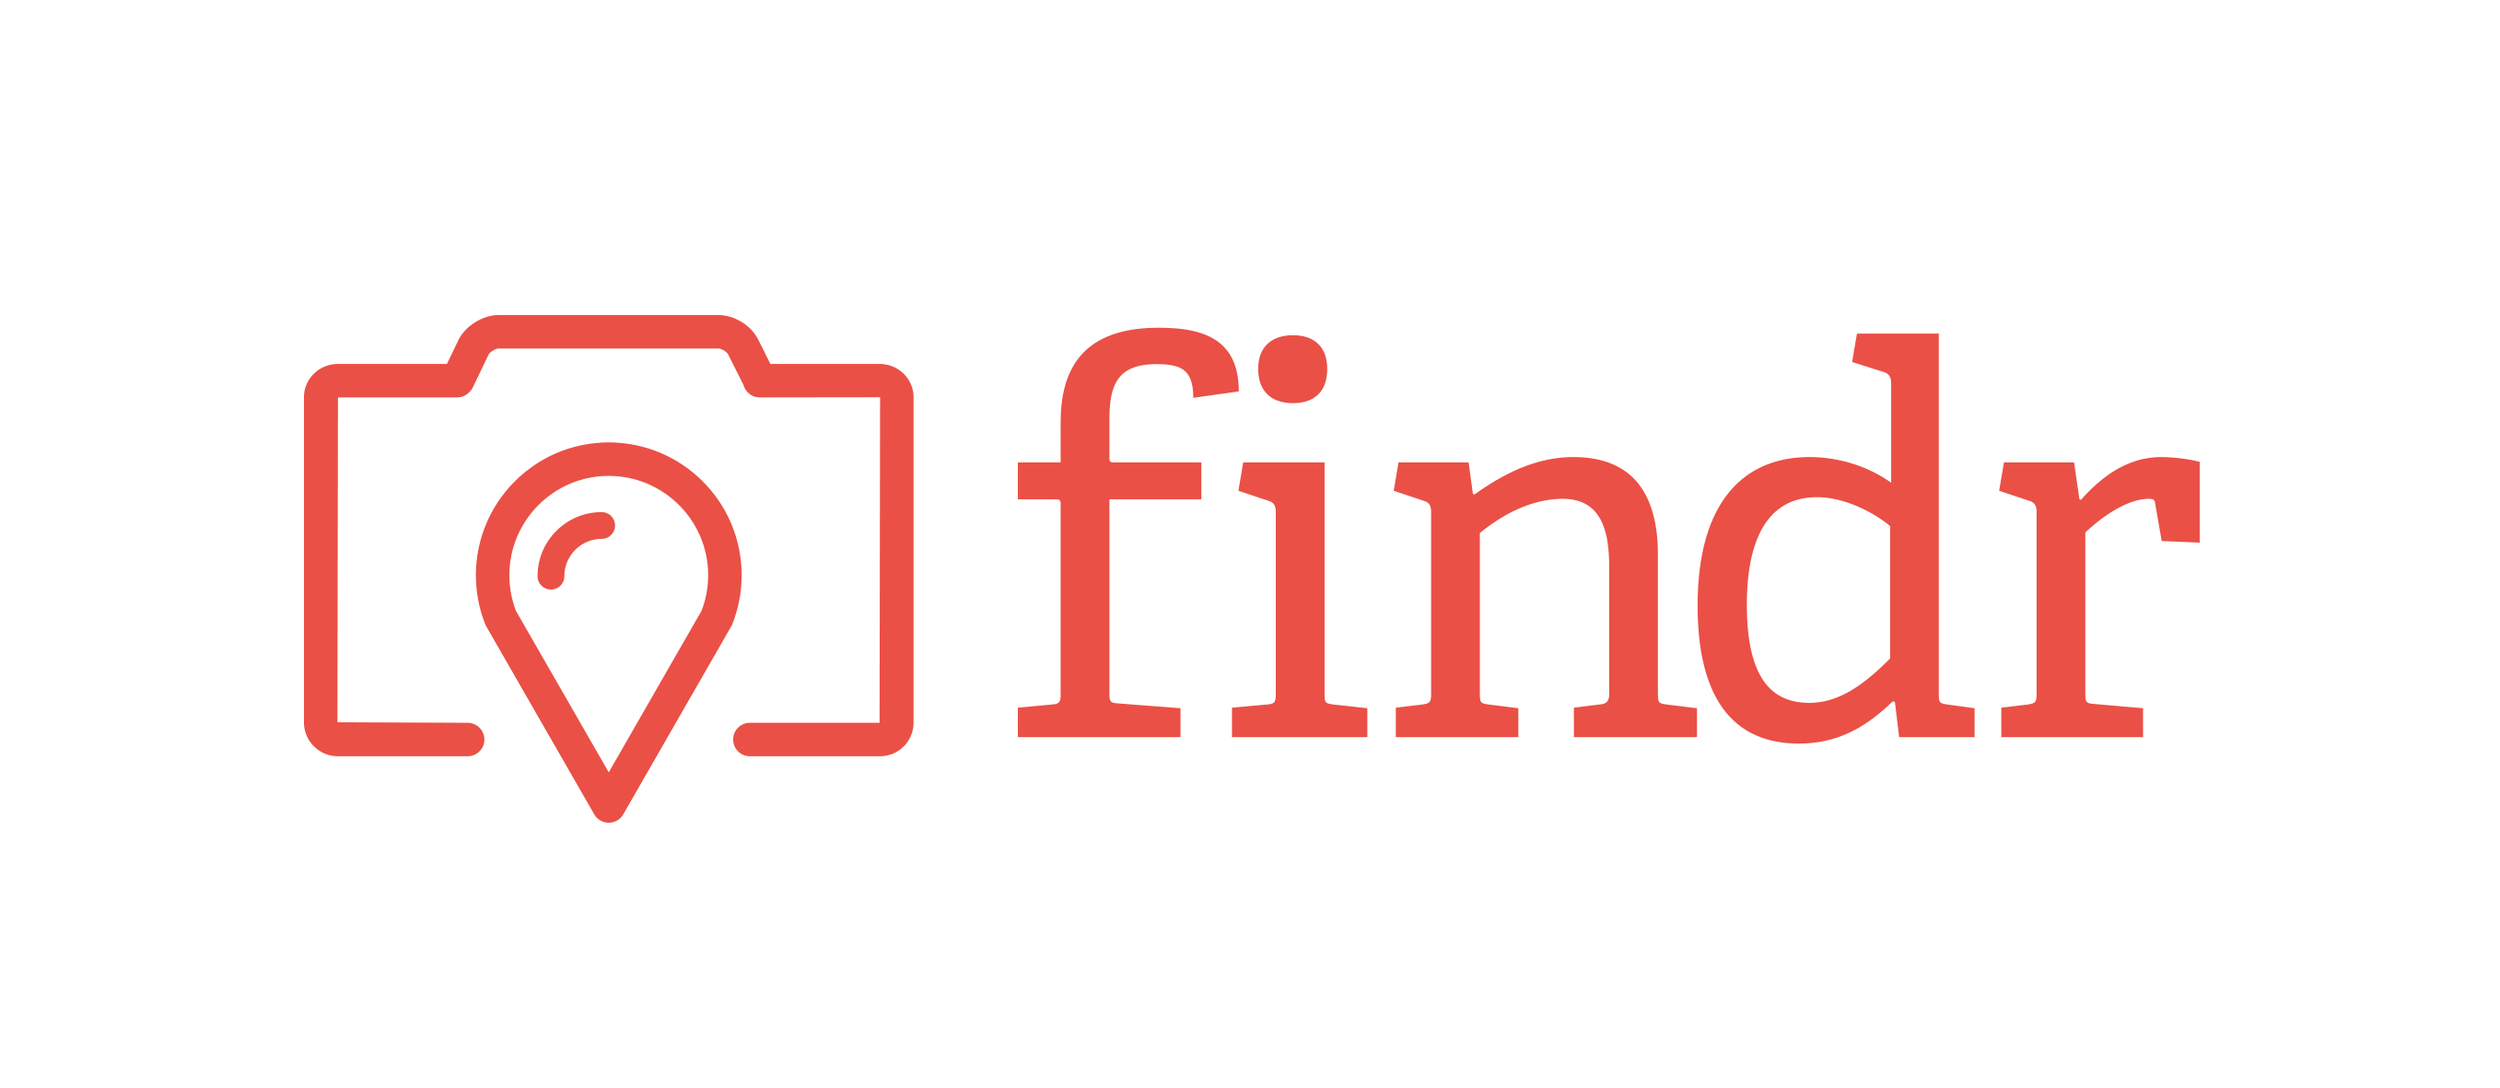 findr_logo_reversed_red_HD.png